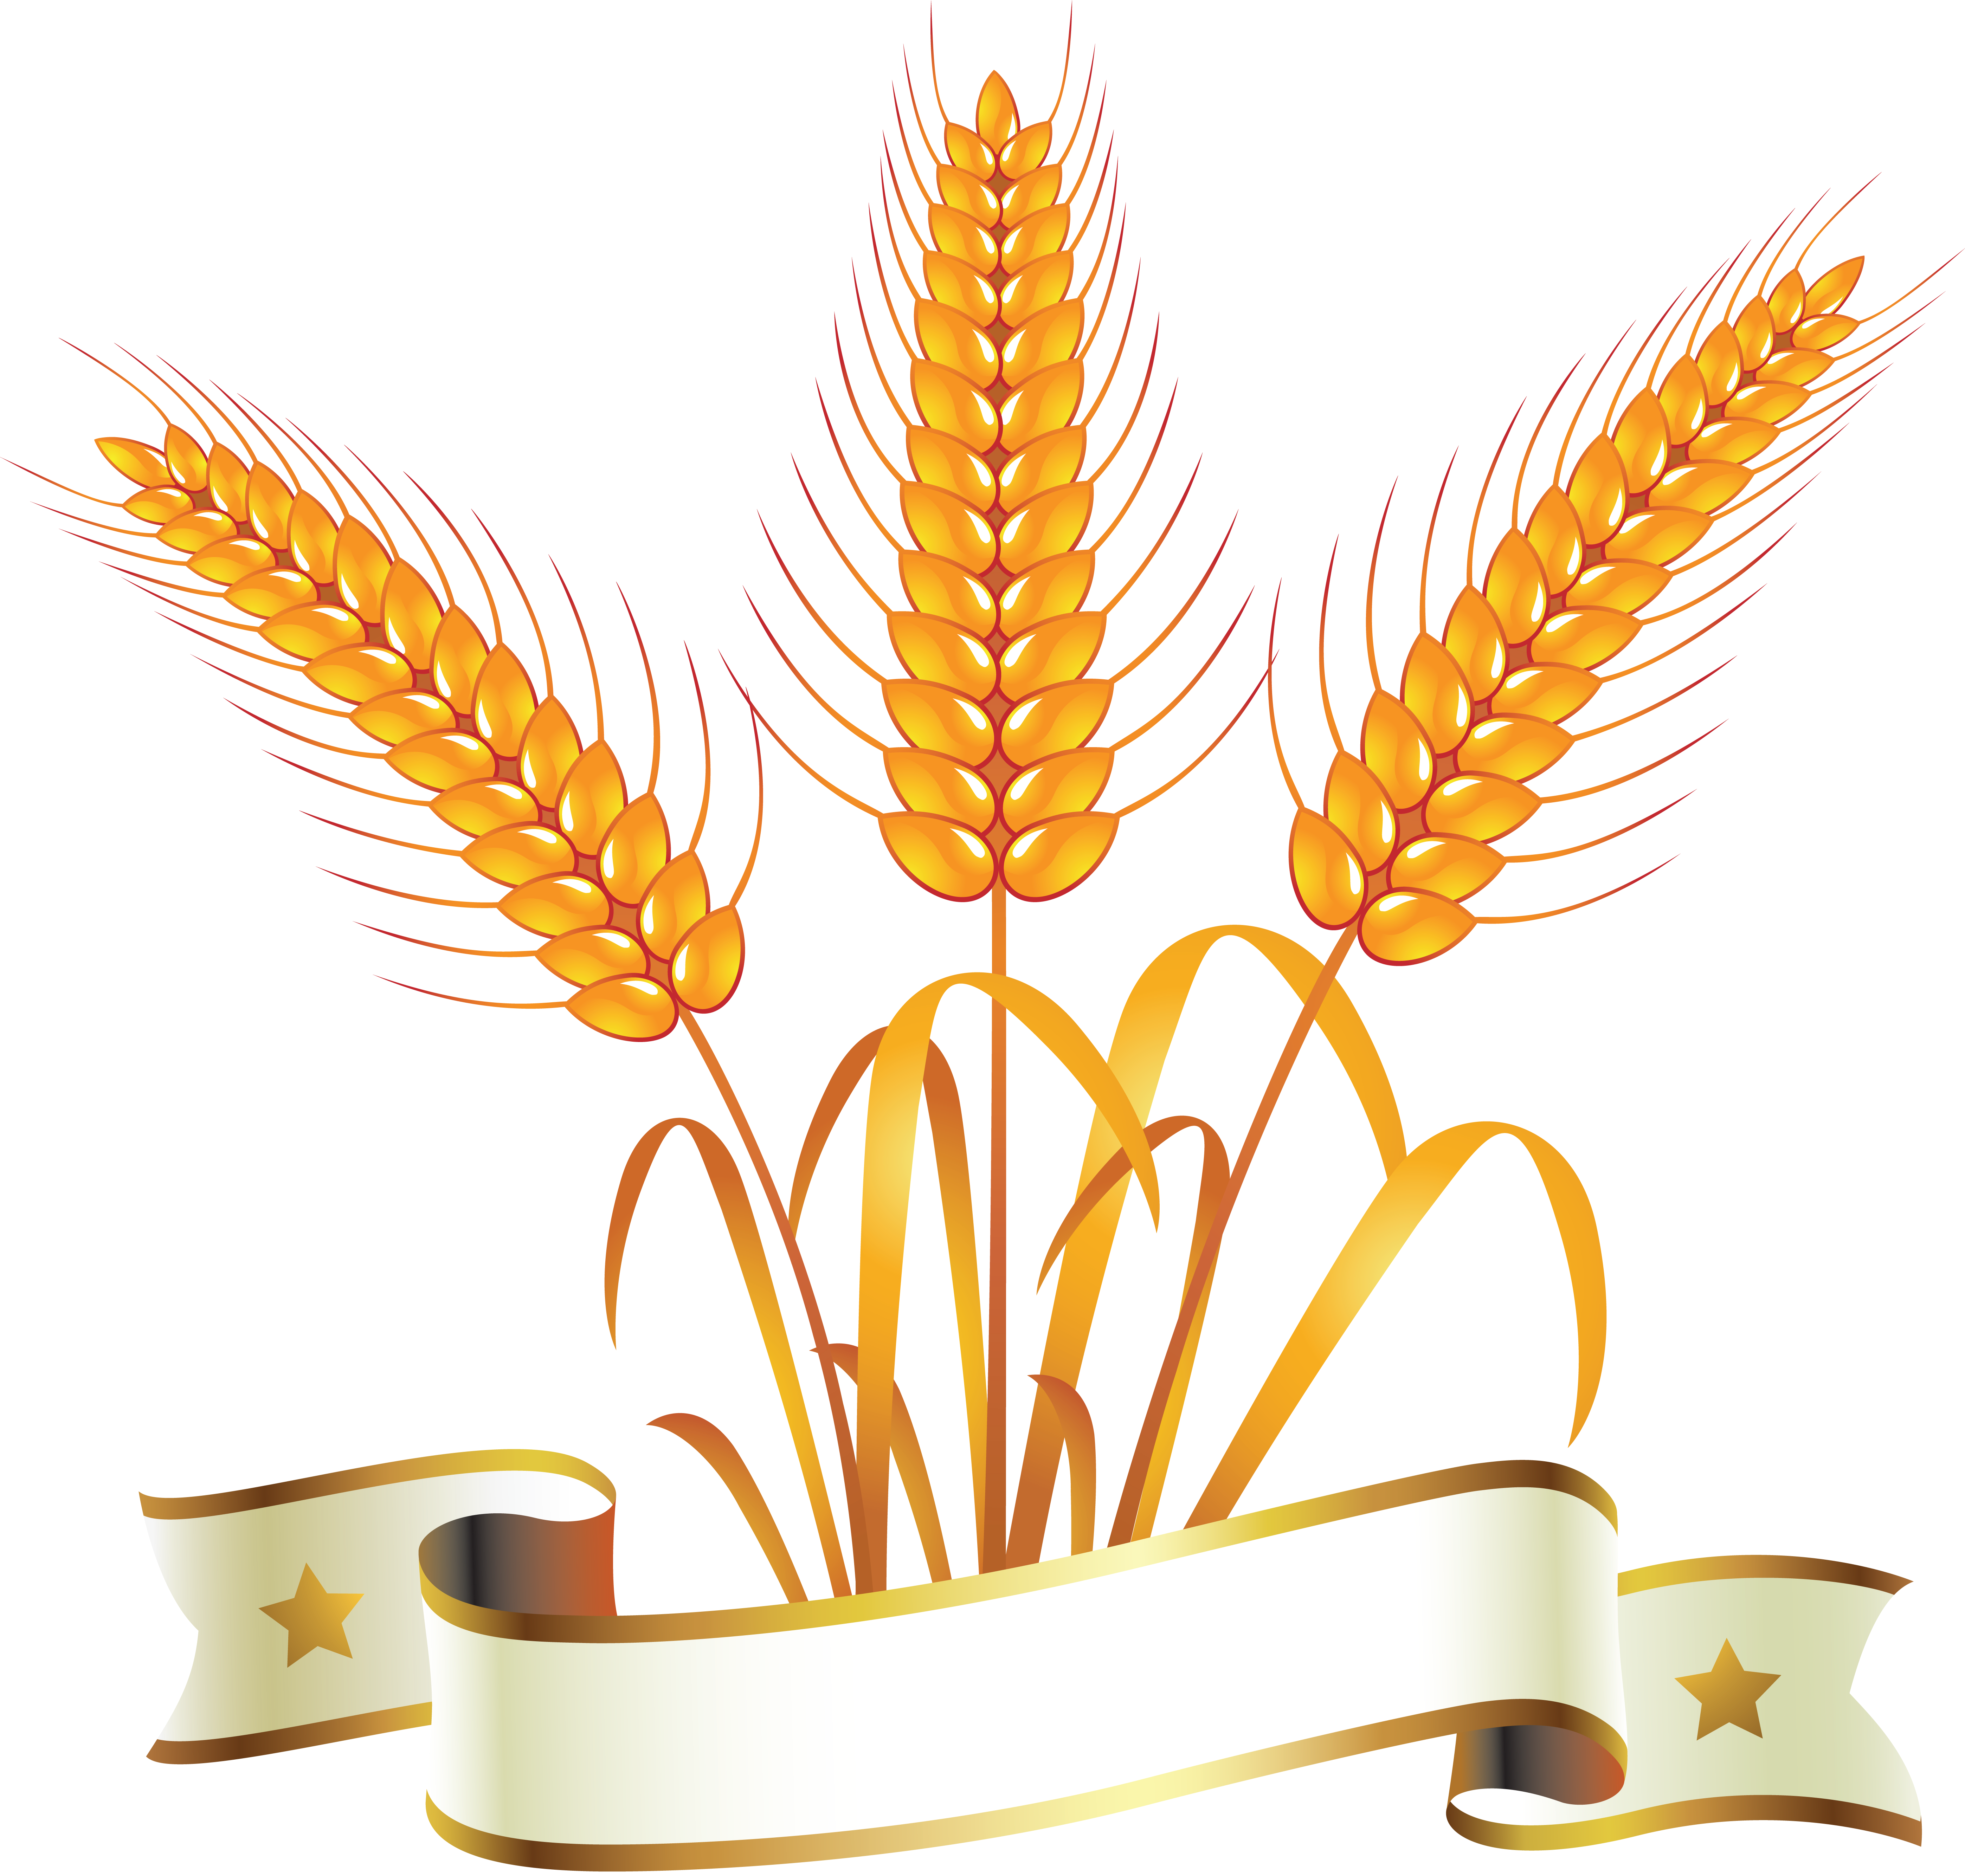 Cereal clipart wheat seed. Png images free download